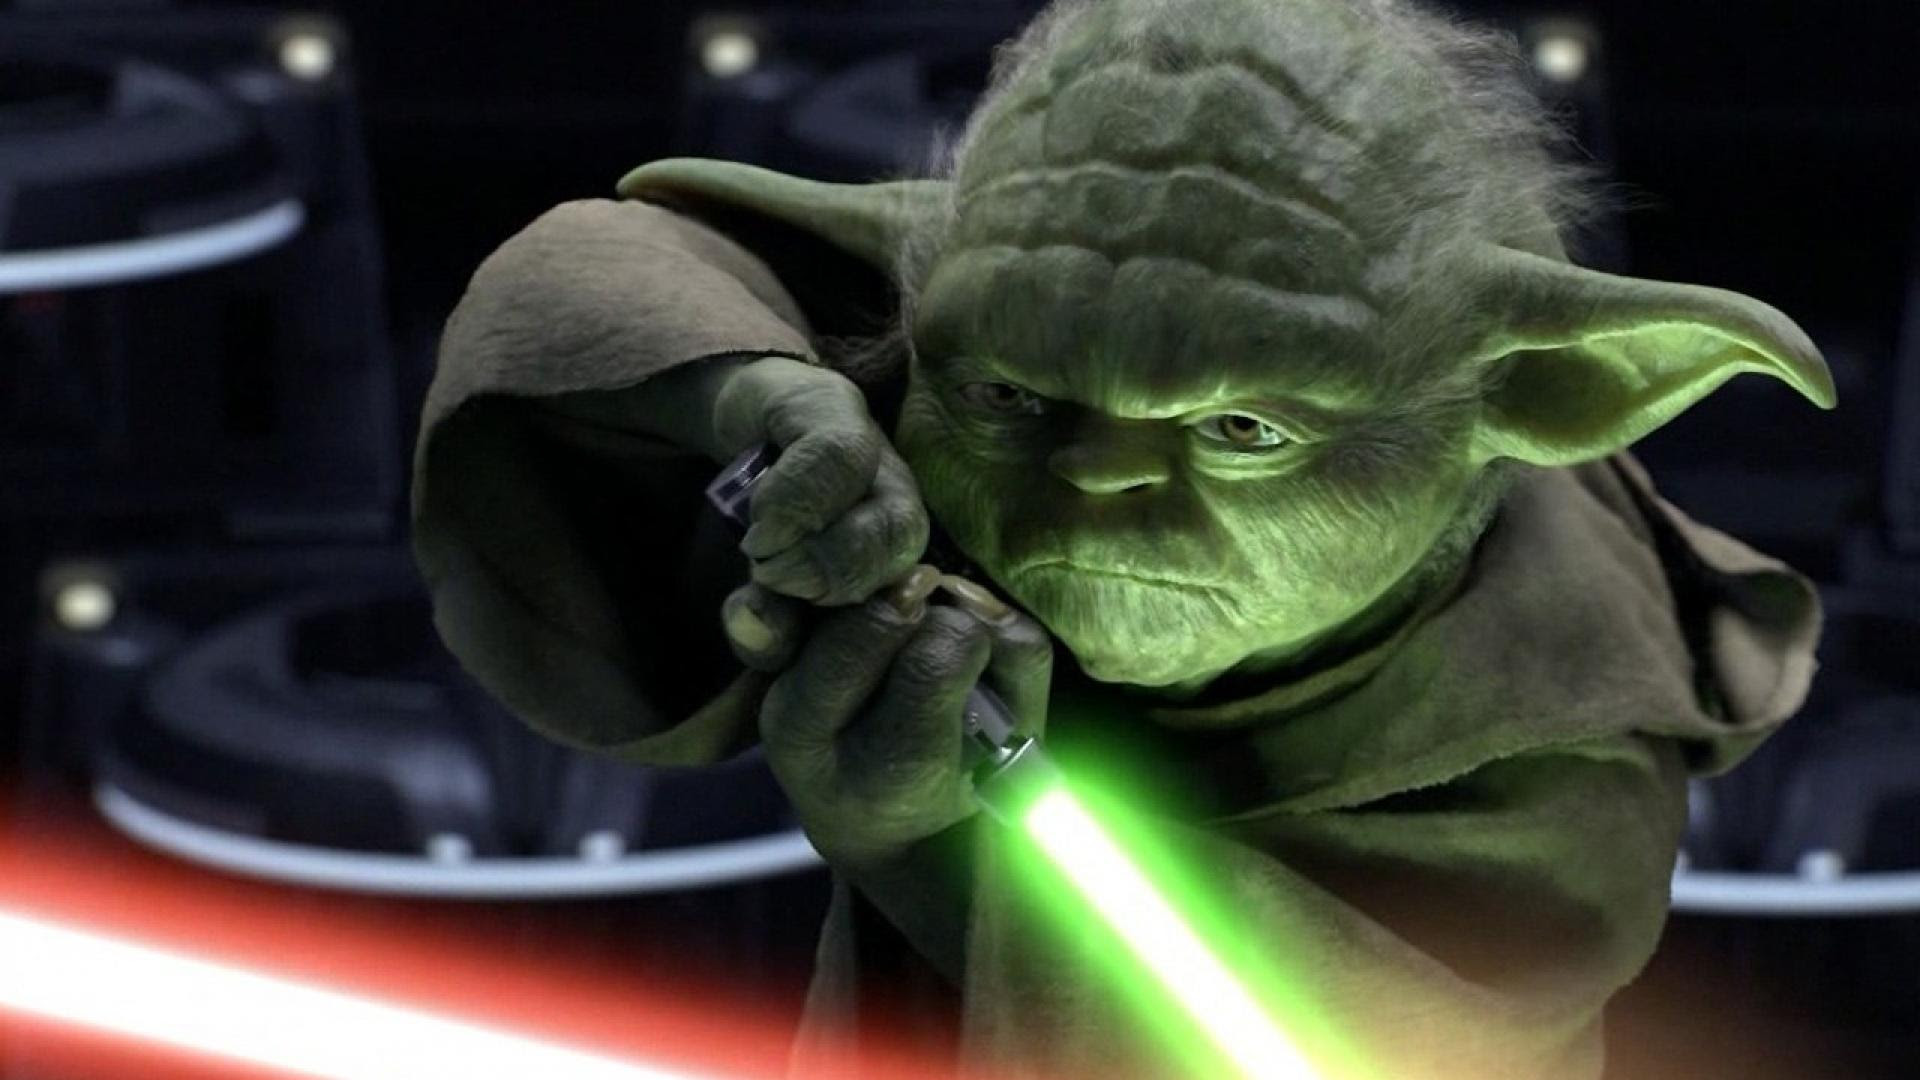 Yoda Iphone Wallpaper Images Free Download 1920x1080